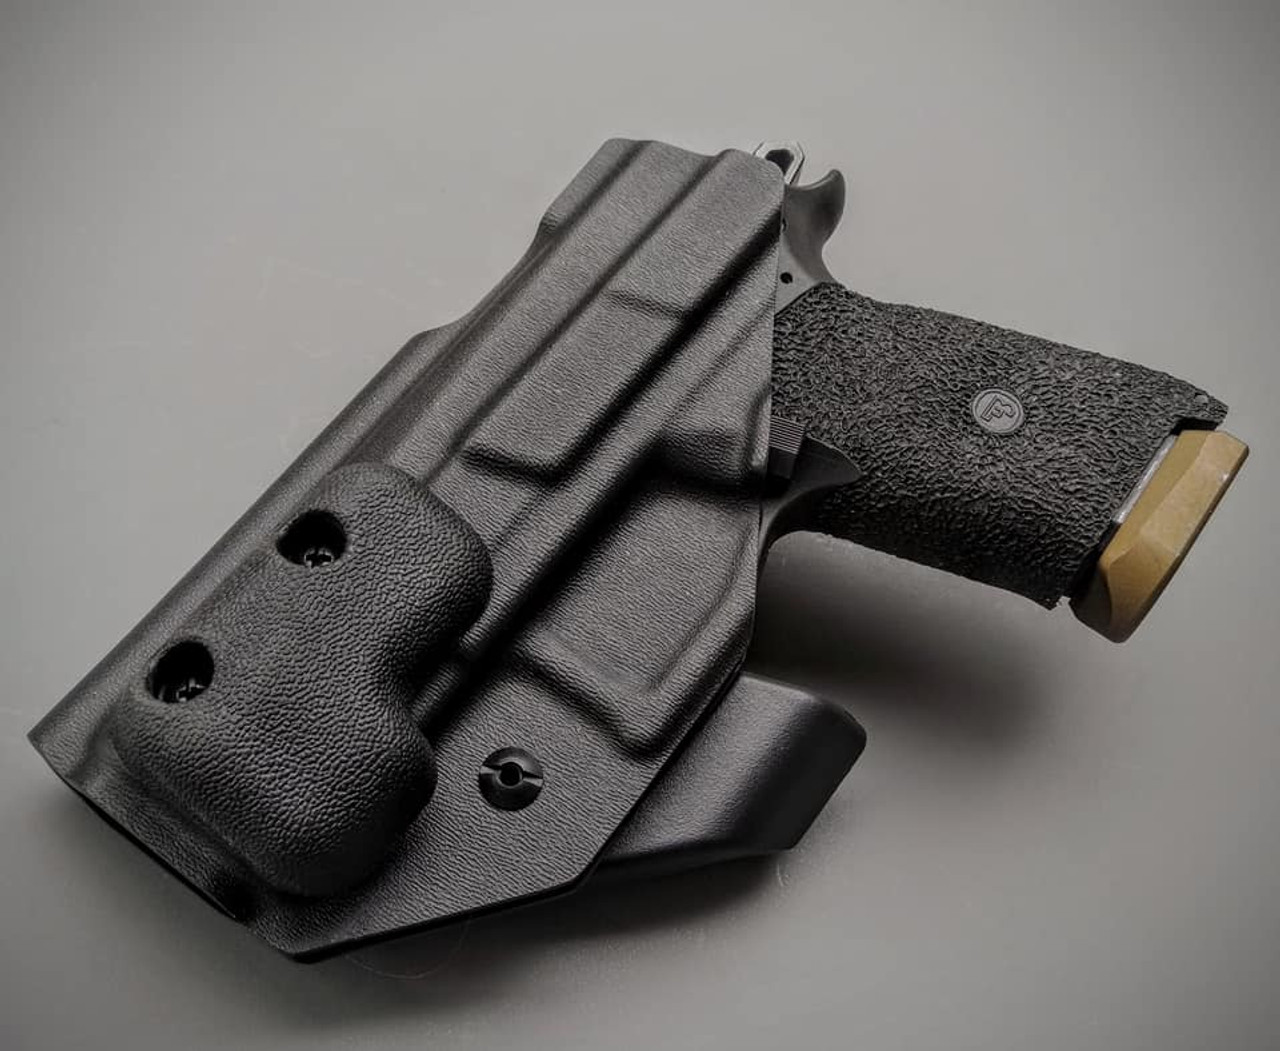 CZ P-07 Appendix Carry Holster with Wedge